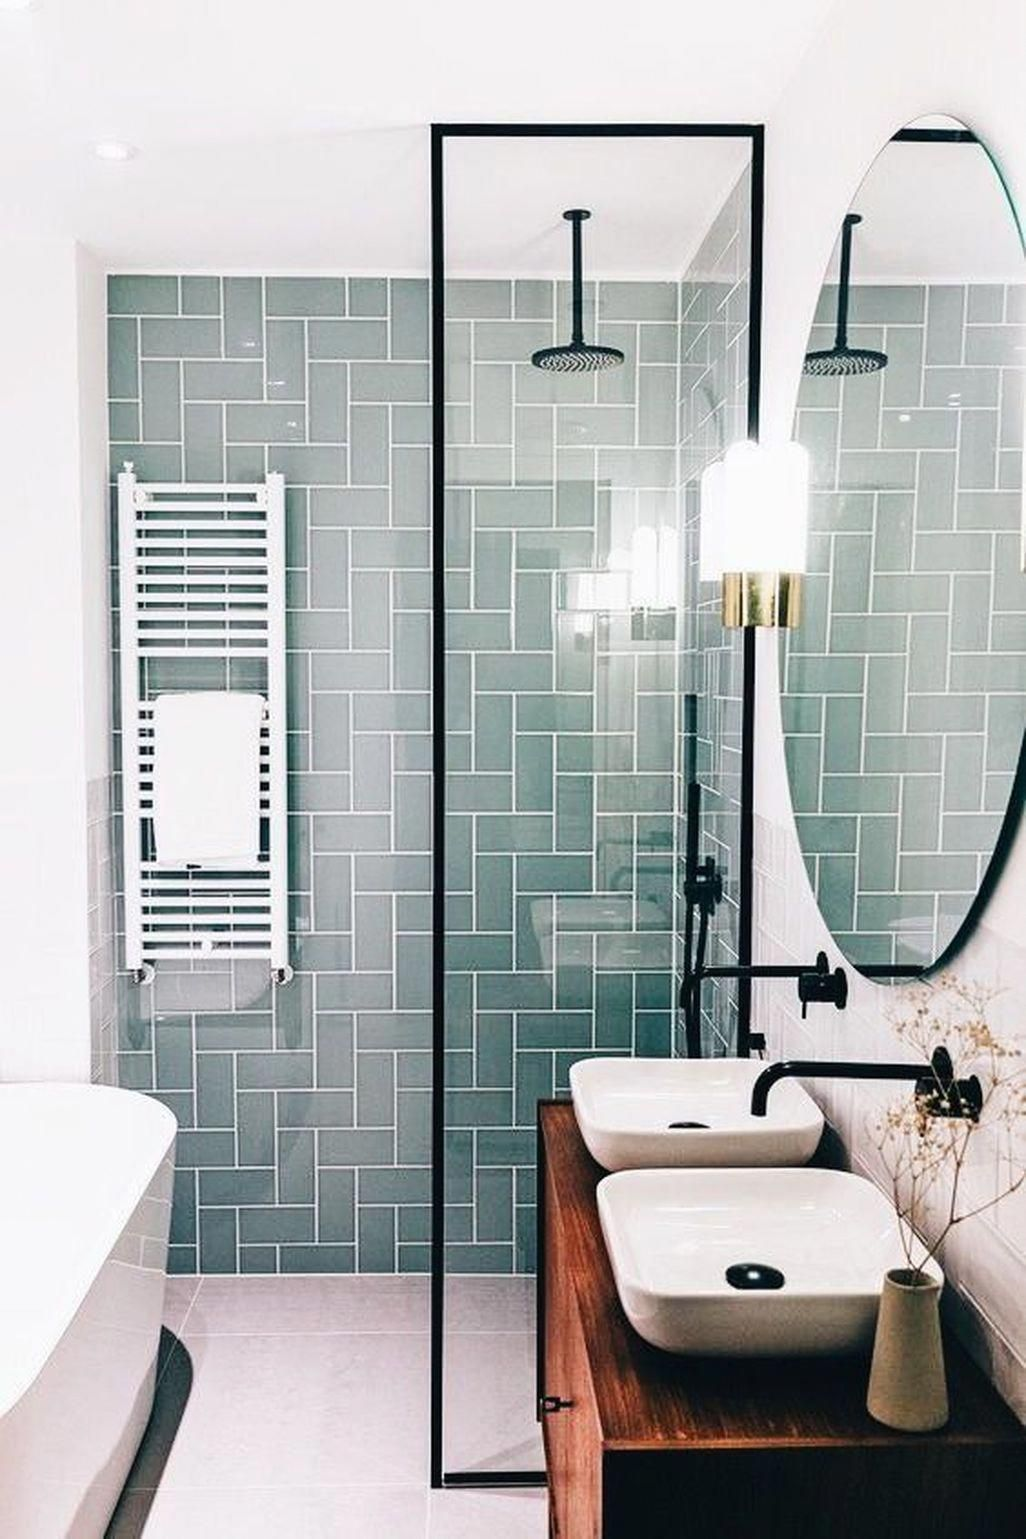 You Can Still Use Some Cool Small Bathroom Design Ideas Like The Ones Listed Below Smal In 2021 Bathroom Design Small Modern Bathroom Remodel Small Bathroom Makeover